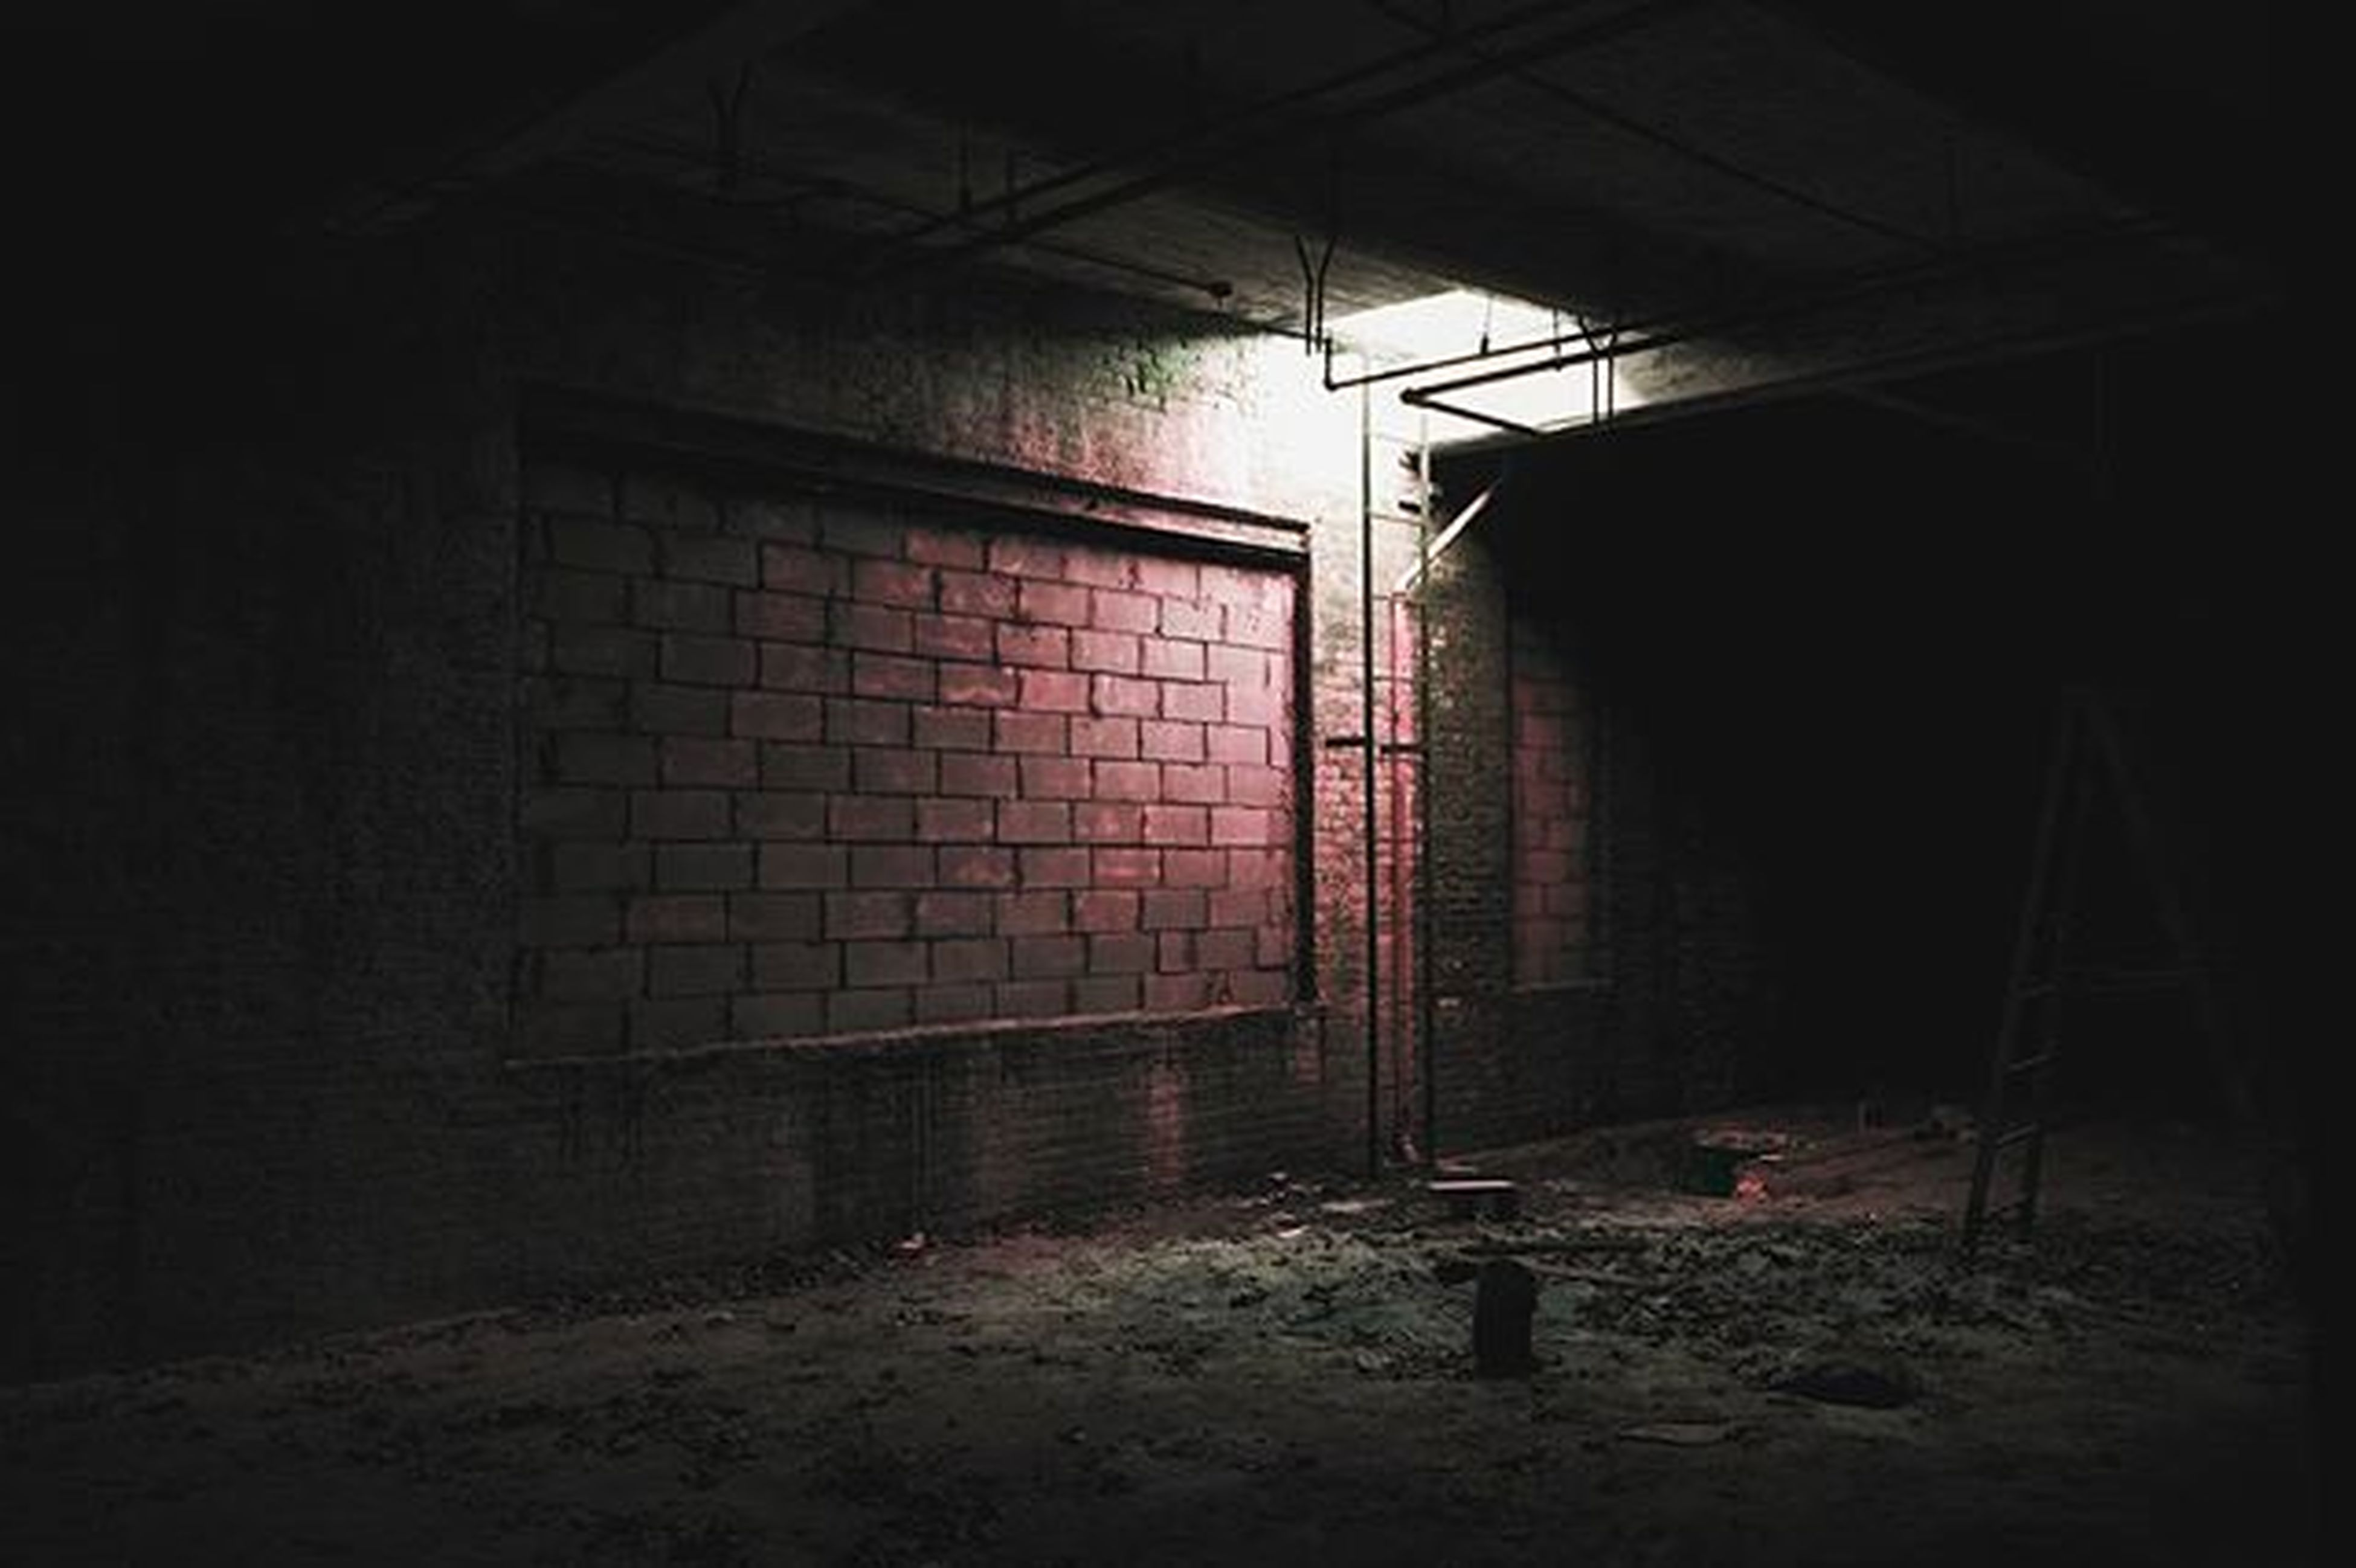 built structure, architecture, abandoned, indoors, damaged, obsolete, run-down, empty, door, absence, sunlight, house, window, building exterior, old, no people, interior, building, wall - building feature, deterioration